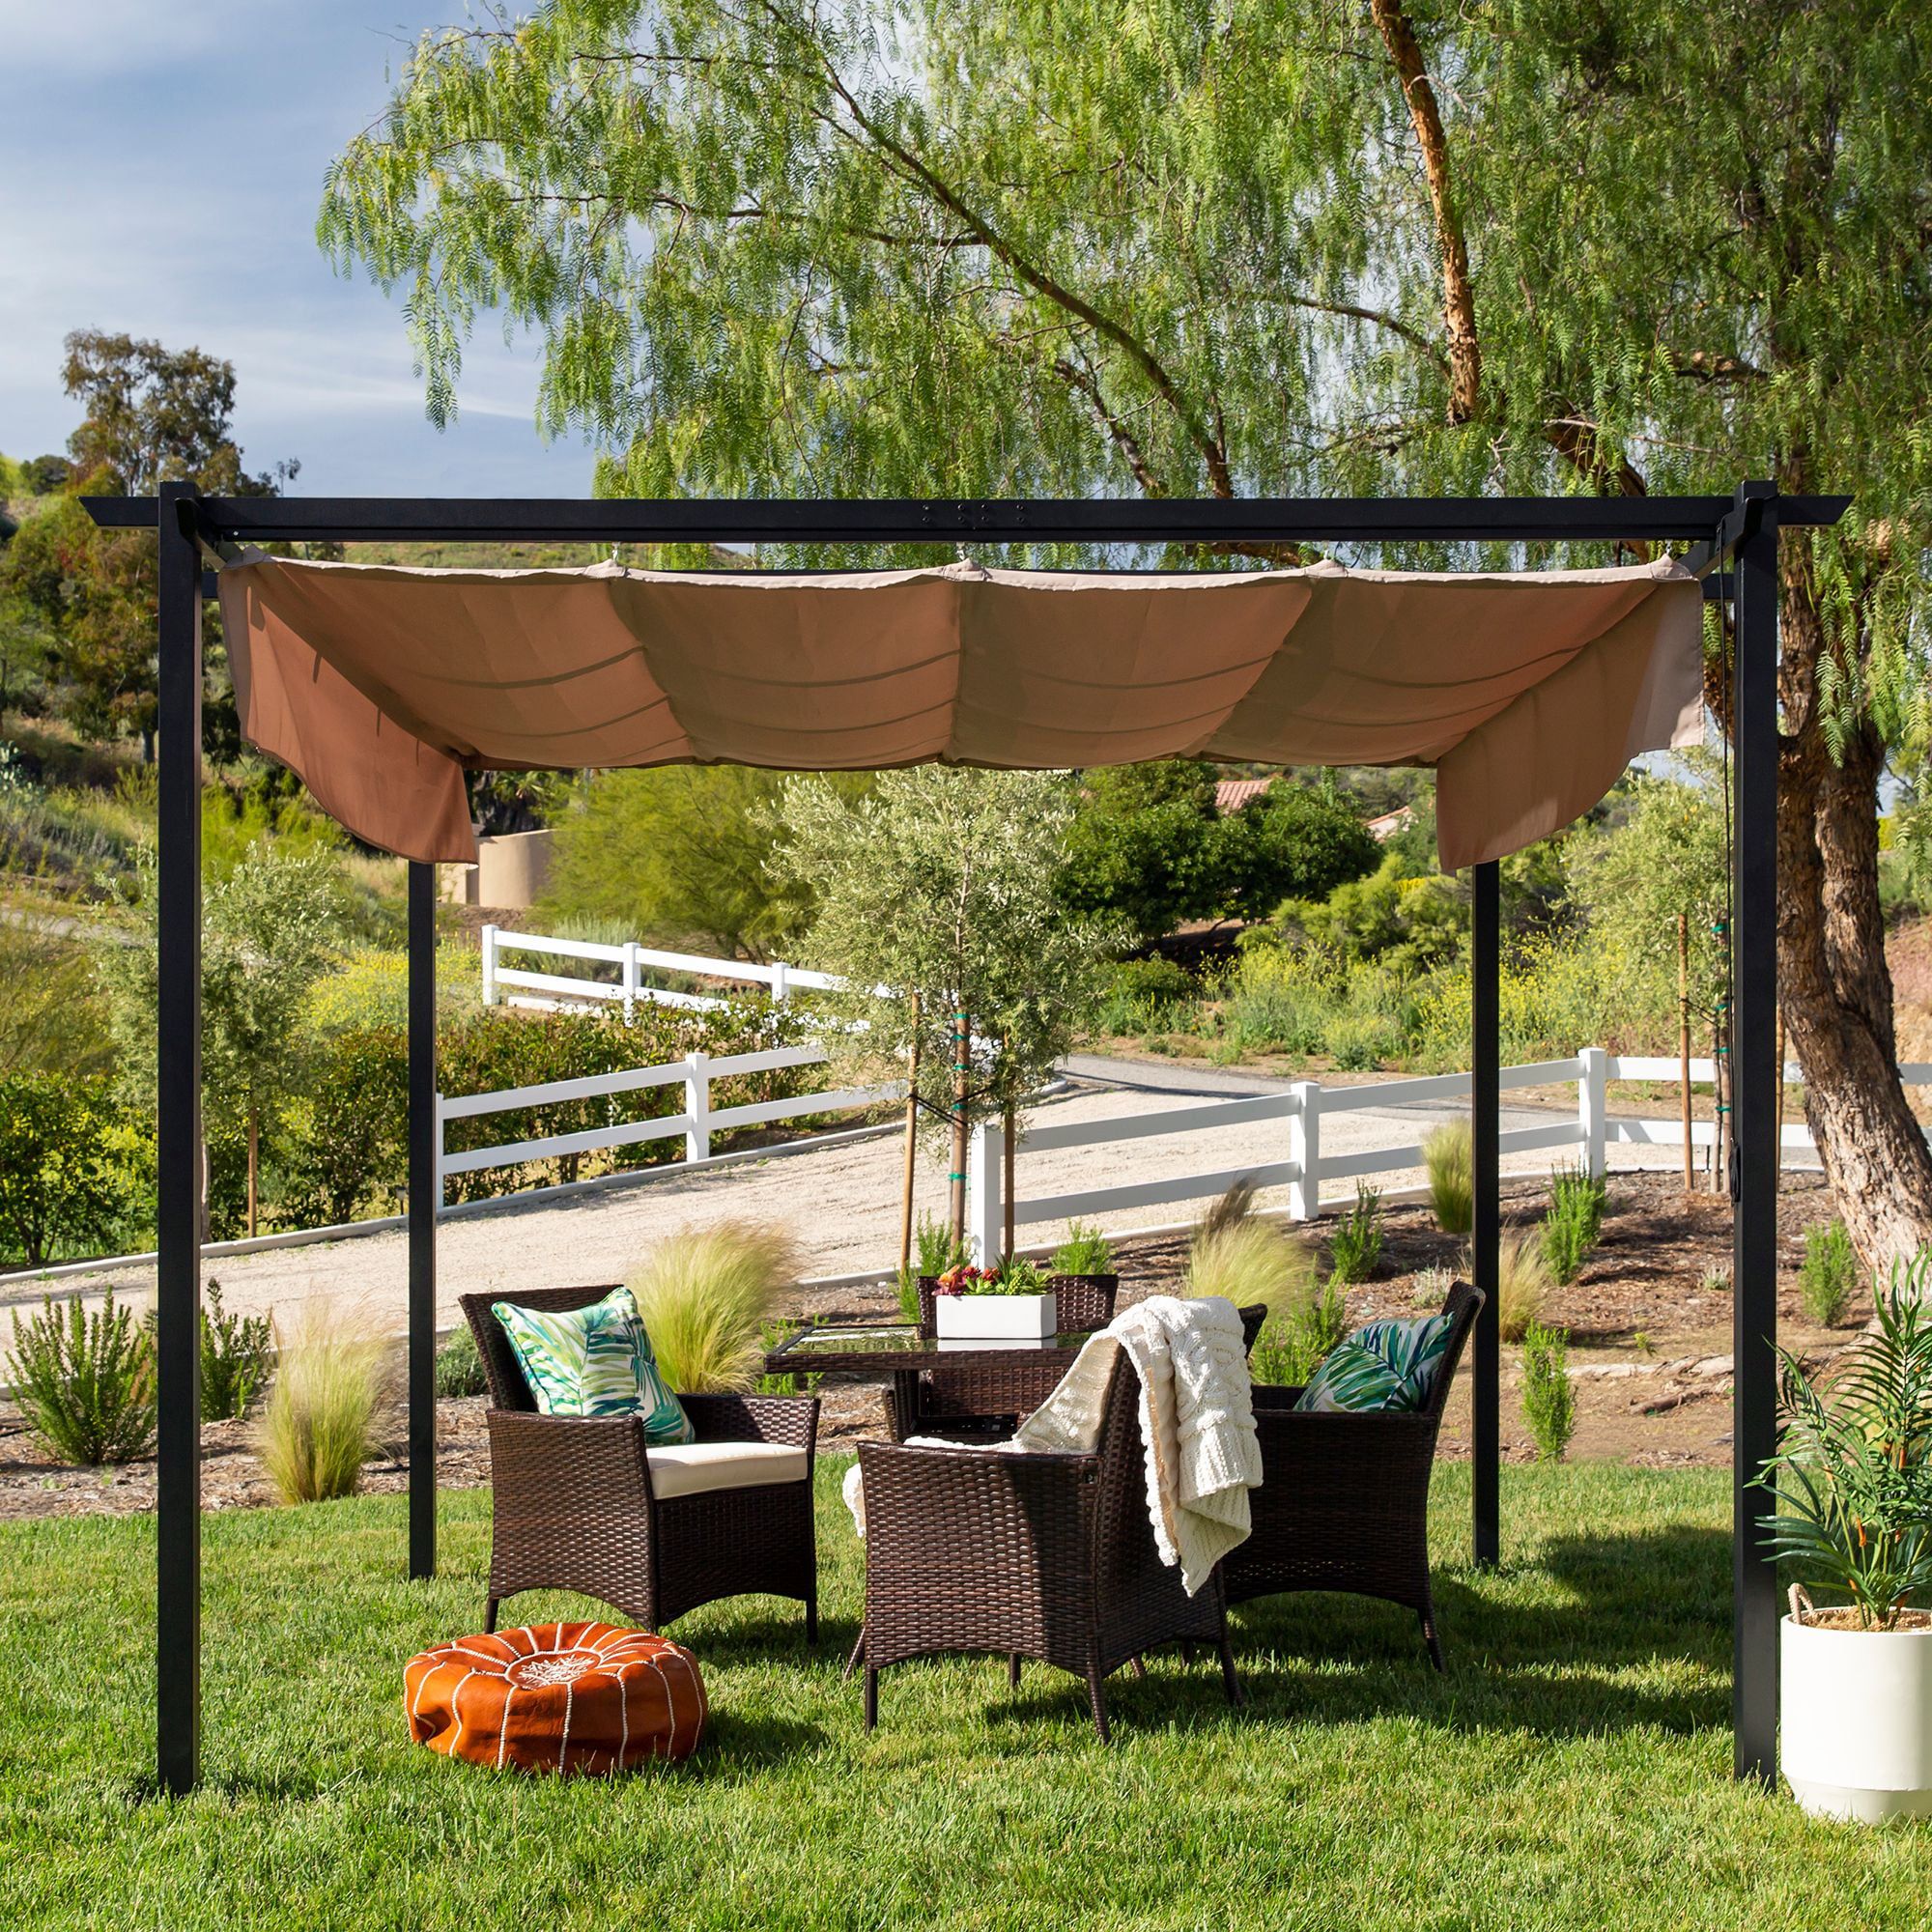 Best Choice Products 10x10ft Patio Weather Resistant Pergola Shelter W Retractable Sun Shade Canopy Steel Frame Walmart Com Walmart Com